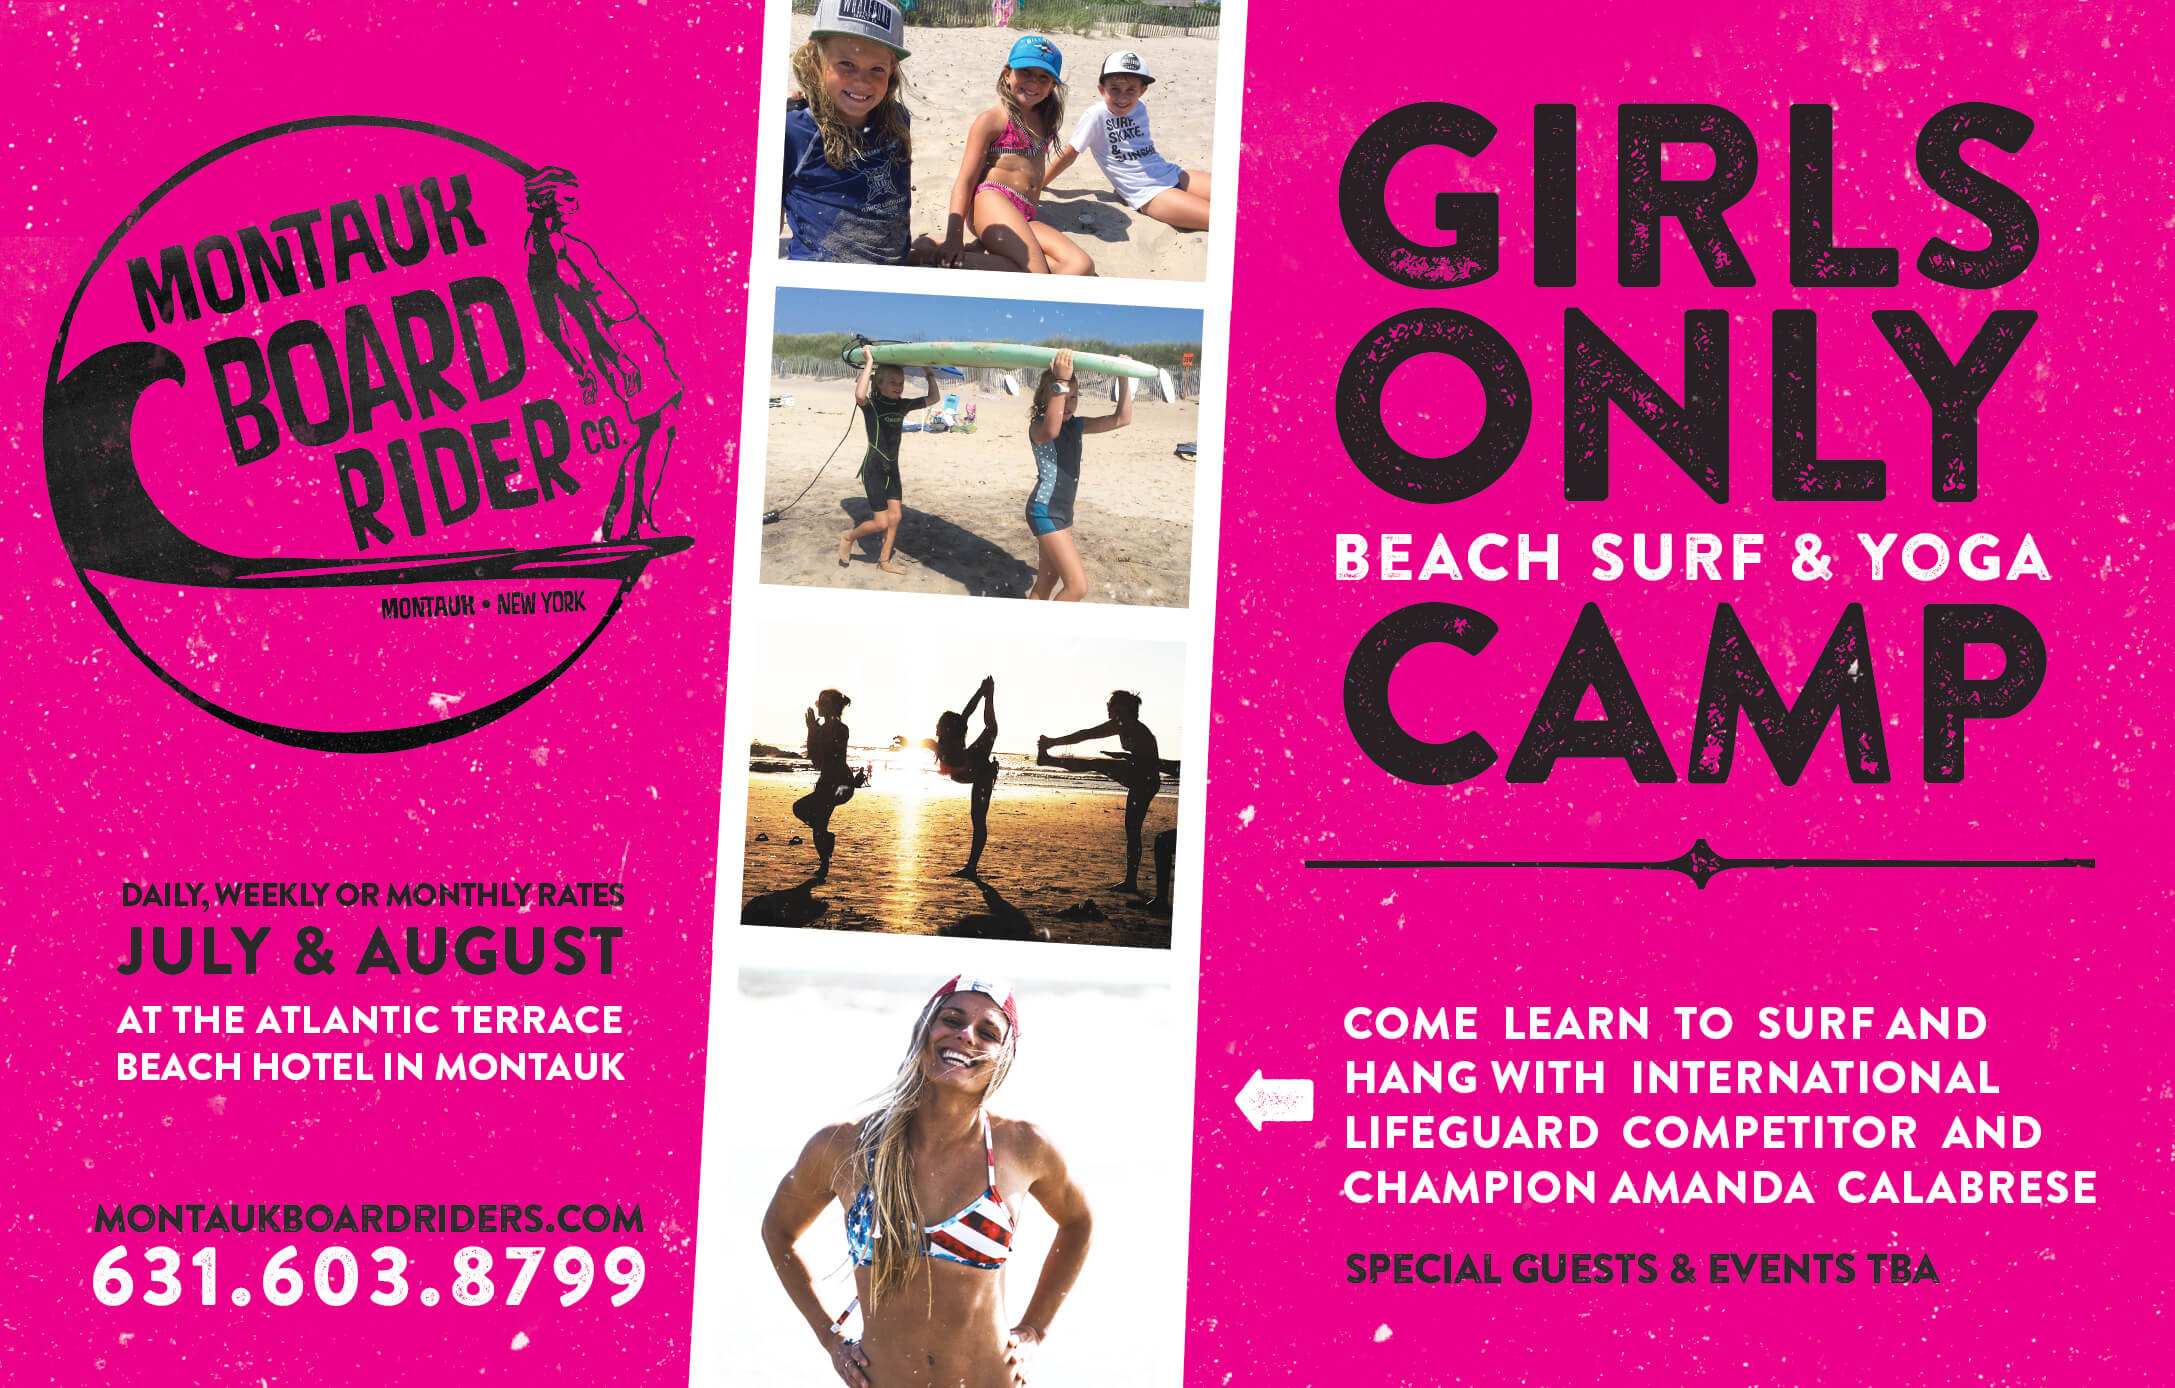 Montauk Boardriders girls only camp